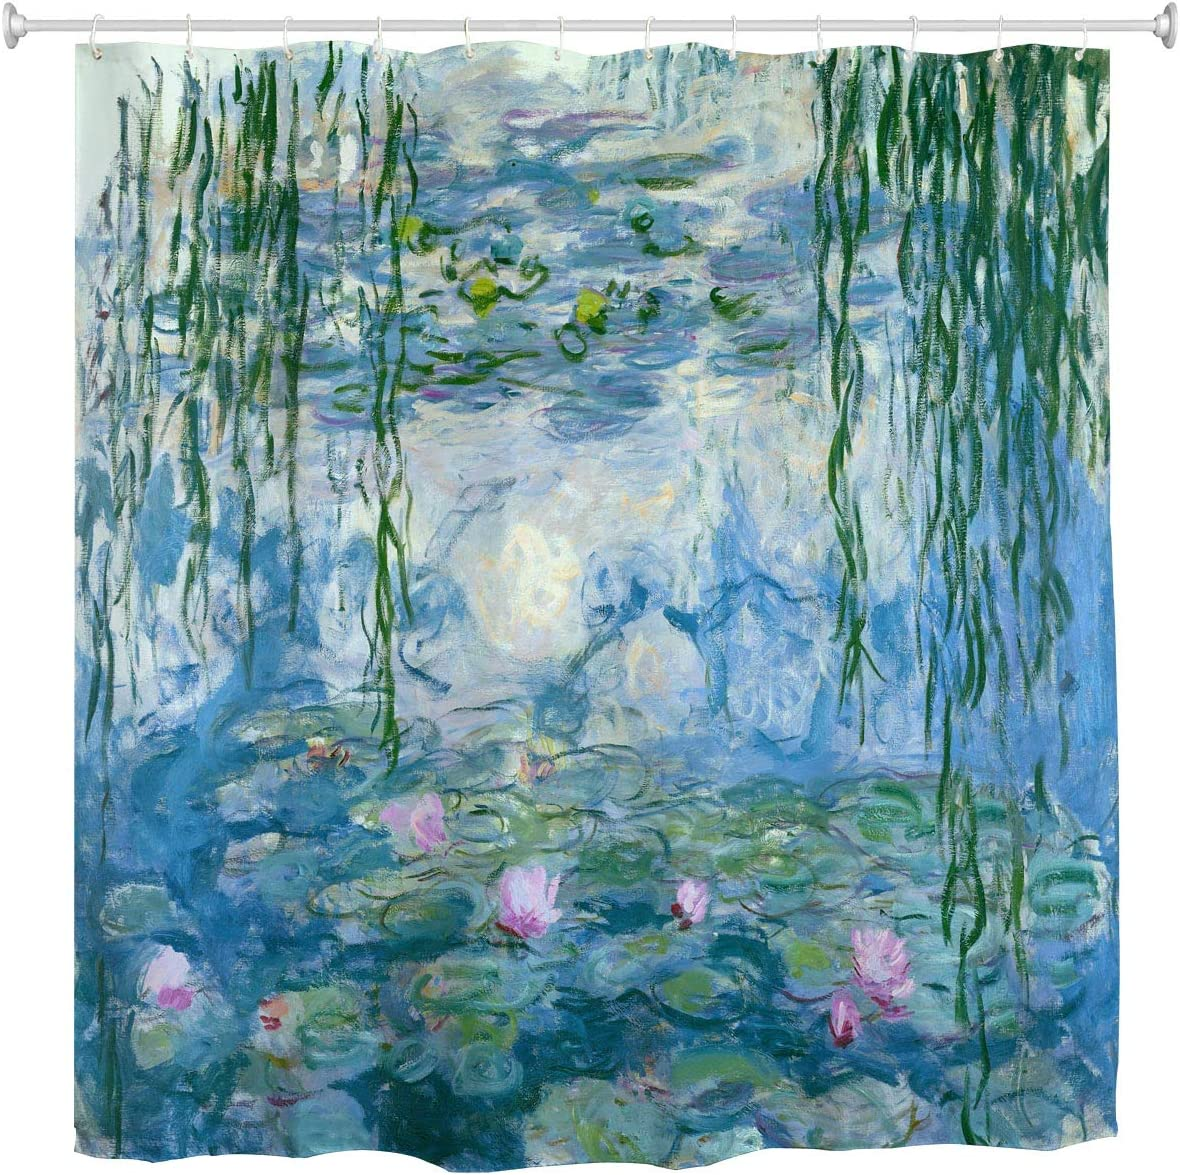 Home Decor Shower Curtain Water Lilies by Claude Monet Oil Paintings Flowers Waterproof Resistant, Fabric Bathroom Decor Set with 12 Hooks, 72